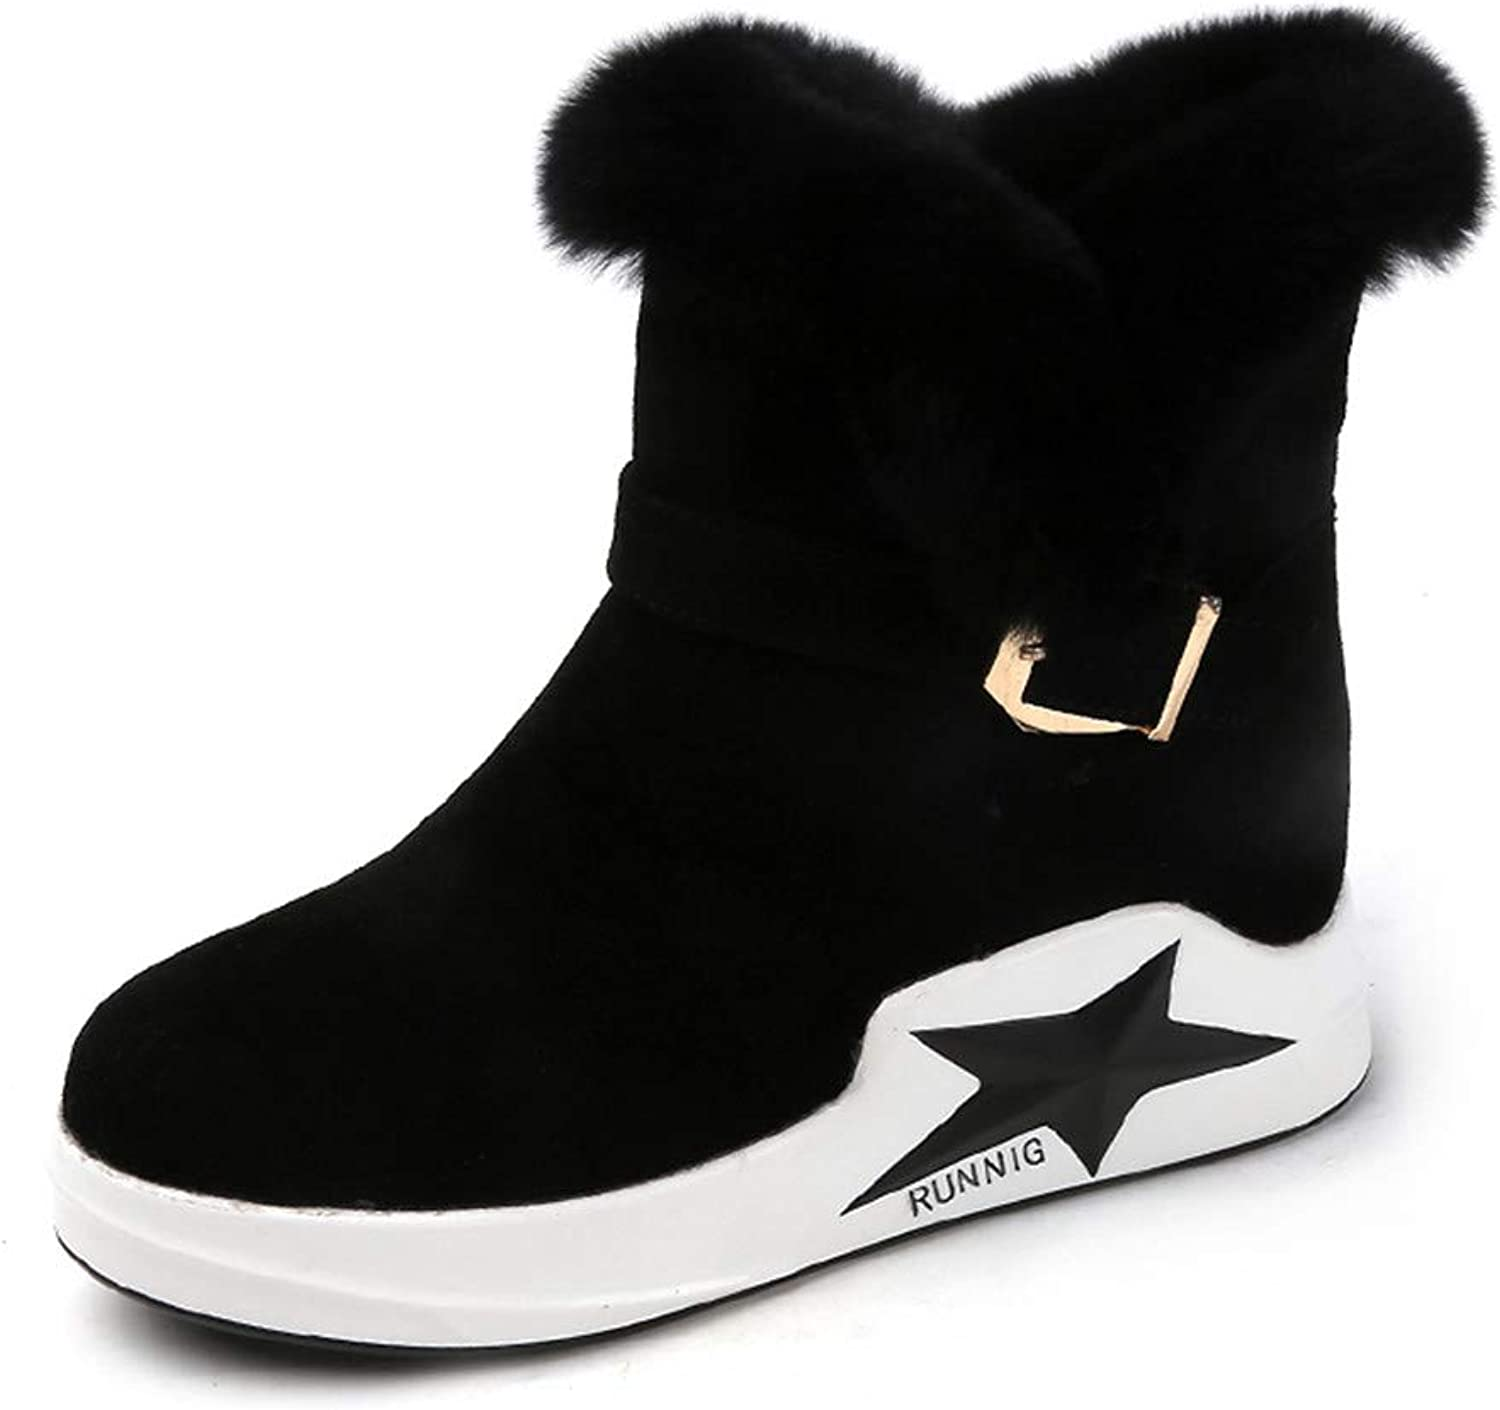 R-Anketsy Thick Fur Suede Platform Snow Boots Comfortable Flat Heels Plush Warm Winter shoes Short Booties